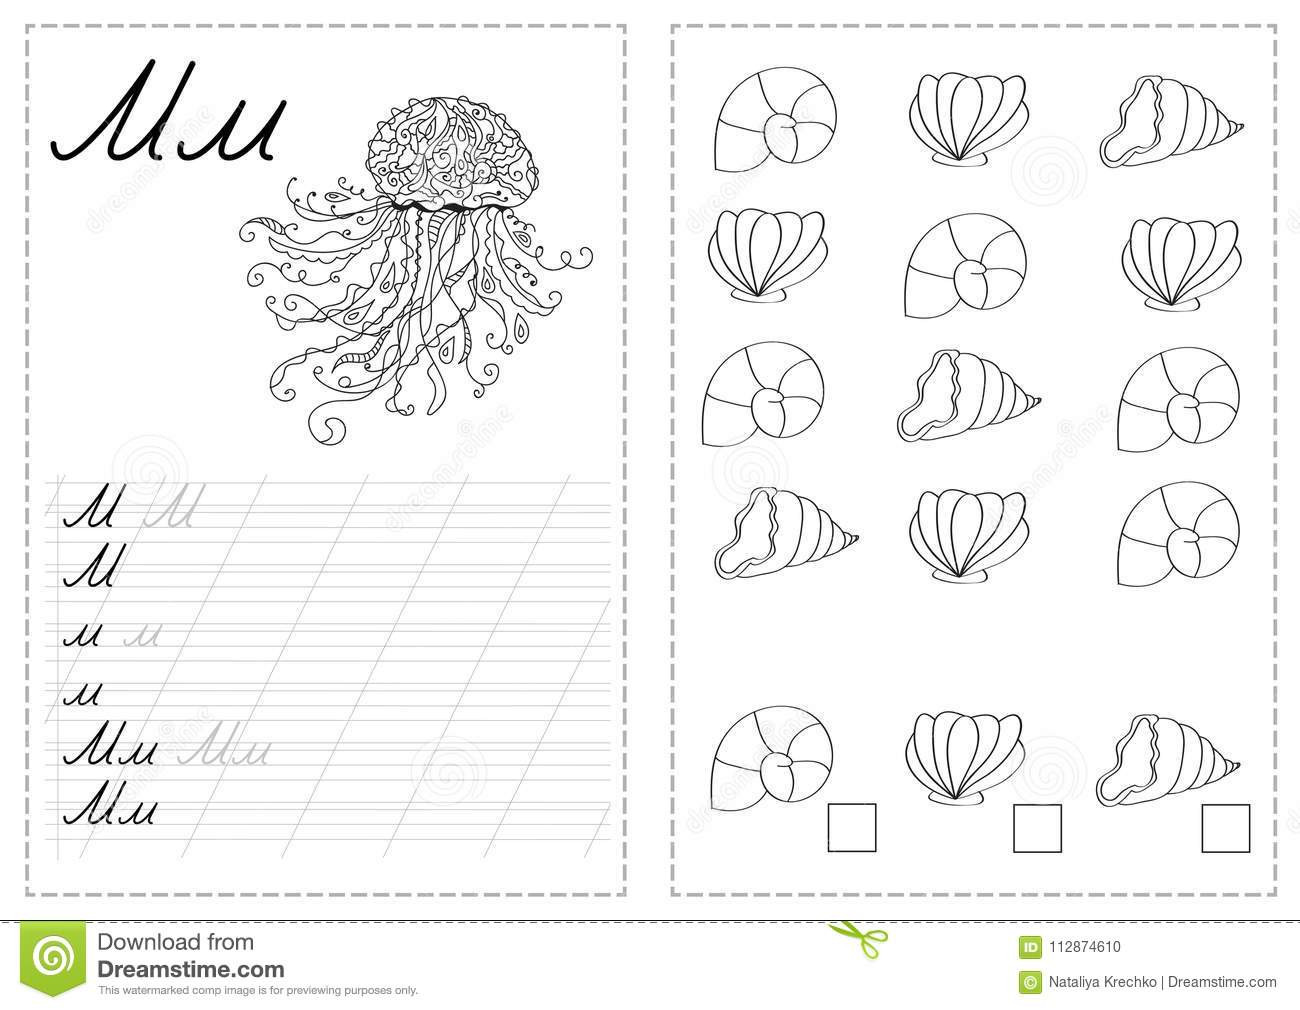 alphabet letters tracing worksheet russian jellyfish basic writing practiceen kids coloring book sheets for orton gillingham